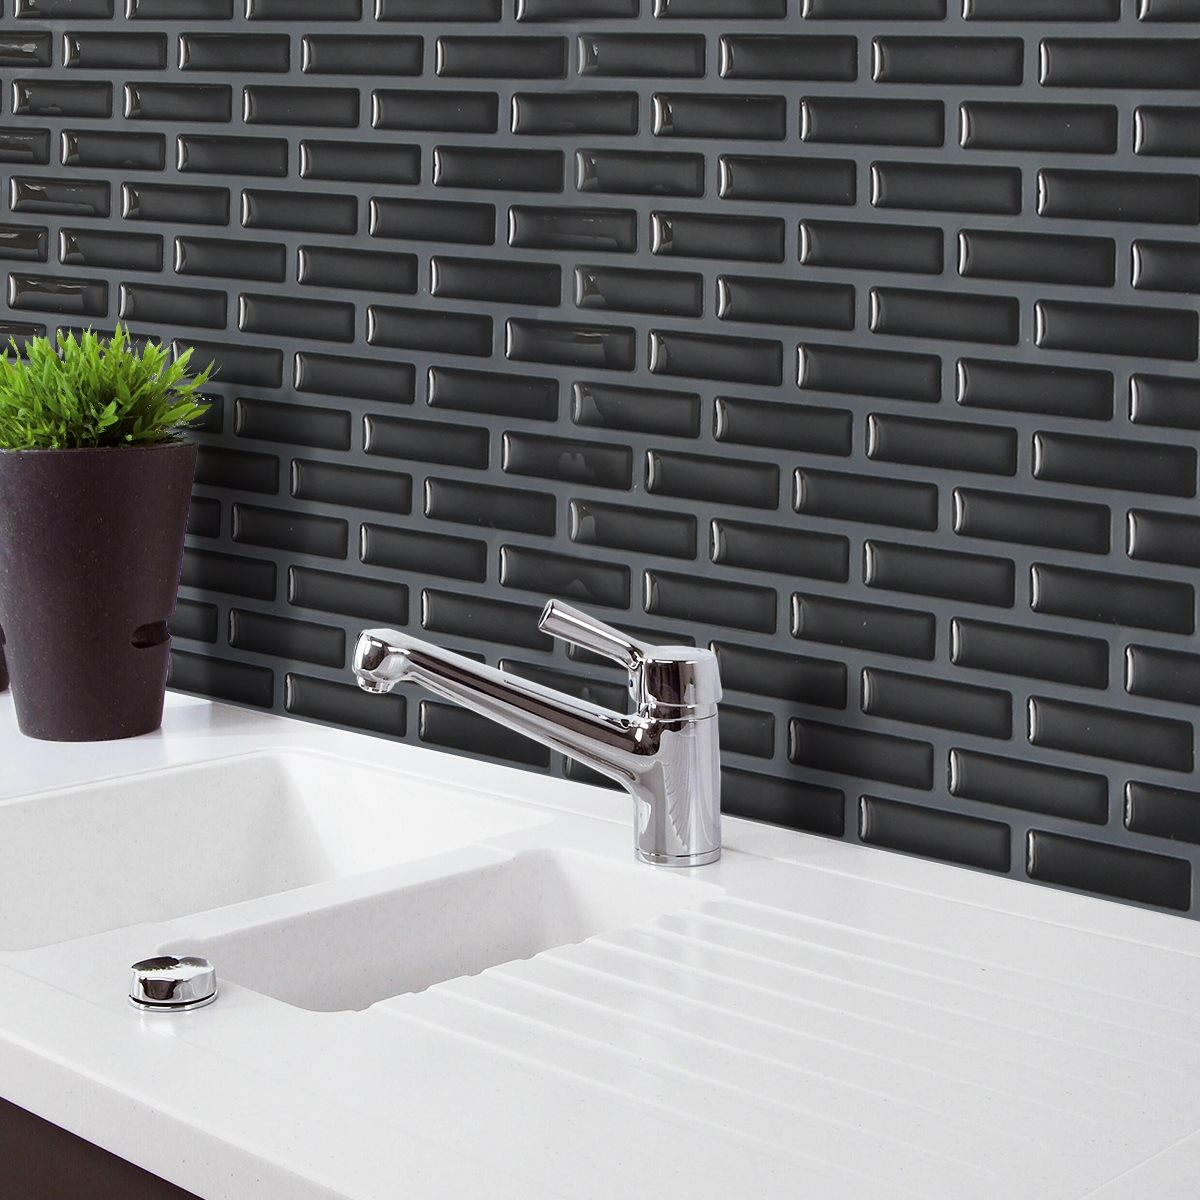 Acquista all'ingrosso Online brick tiles kitchen da Grossisti ...